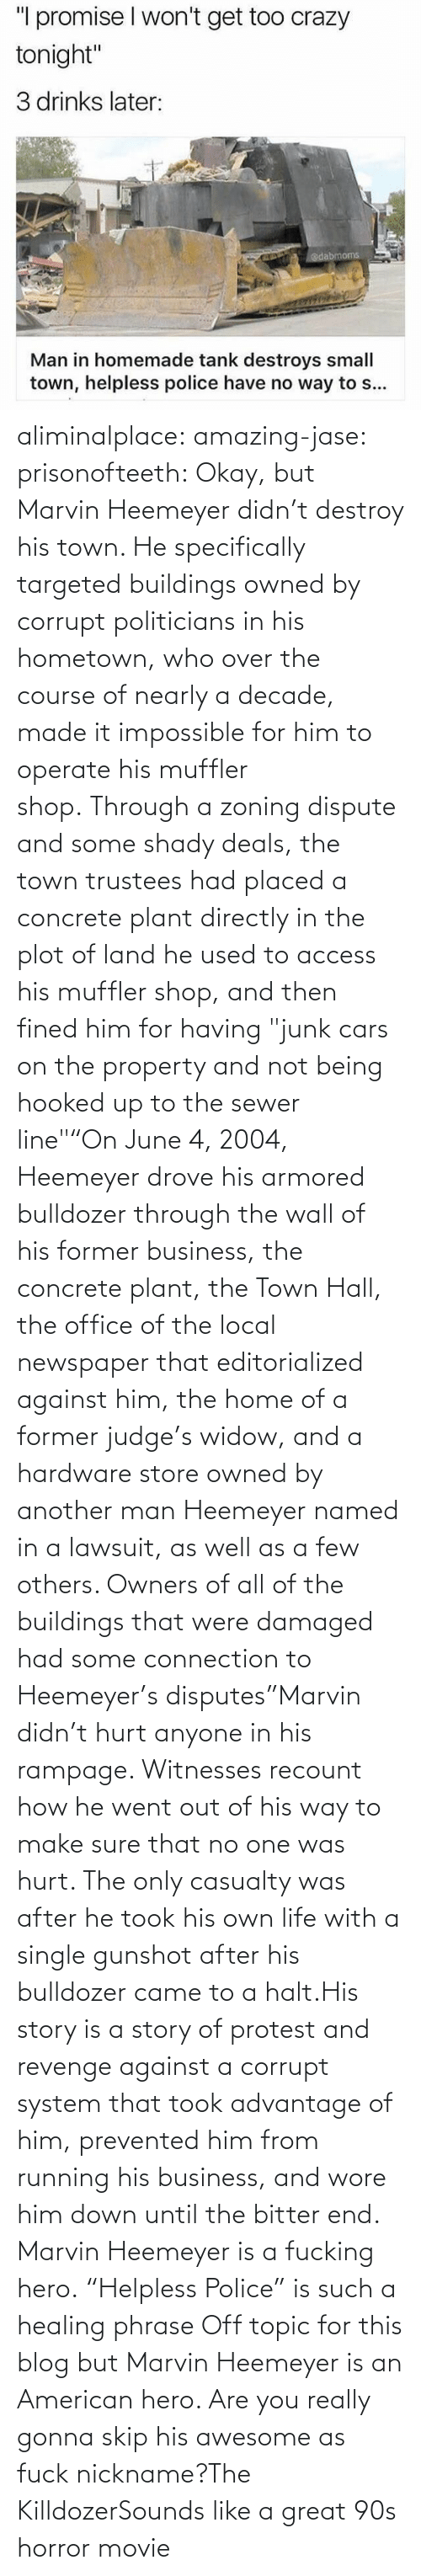 "A Single: aliminalplace: amazing-jase:  prisonofteeth: Okay, but Marvin Heemeyer didn't destroy his town. He specifically targeted buildings owned by corrupt politicians in his hometown, who over the course of nearly a decade, made it impossible for him to operate his muffler shop. Through a zoning dispute and some shady deals, the town trustees had placed a concrete plant directly in the plot of land he used to access his muffler shop, and then fined him for having ""junk cars on the property and not being hooked up to the sewer line""""On June 4, 2004, Heemeyer drove his armored bulldozer through the wall of his former business, the concrete plant, the Town Hall, the office of the local newspaper that editorialized against him, the home of a former judge's widow, and a hardware store owned by another man Heemeyer named in a lawsuit, as well as a few others. Owners of all of the buildings that were damaged had some connection to Heemeyer's disputes""Marvin didn't hurt anyone in his rampage. Witnesses recount how he went out of his way to make sure that no one was hurt. The only casualty was after he took his own life with a single gunshot after his bulldozer came to a halt.His story is a story of protest and revenge against a corrupt system that took advantage of him, prevented him from running his business, and wore him down until the bitter end. Marvin Heemeyer is a fucking hero. ""Helpless Police"" is such a healing phrase    Off topic for this blog but Marvin Heemeyer is an American hero.     Are you really gonna skip his awesome as fuck nickname?The KilldozerSounds like a great 90s horror movie"